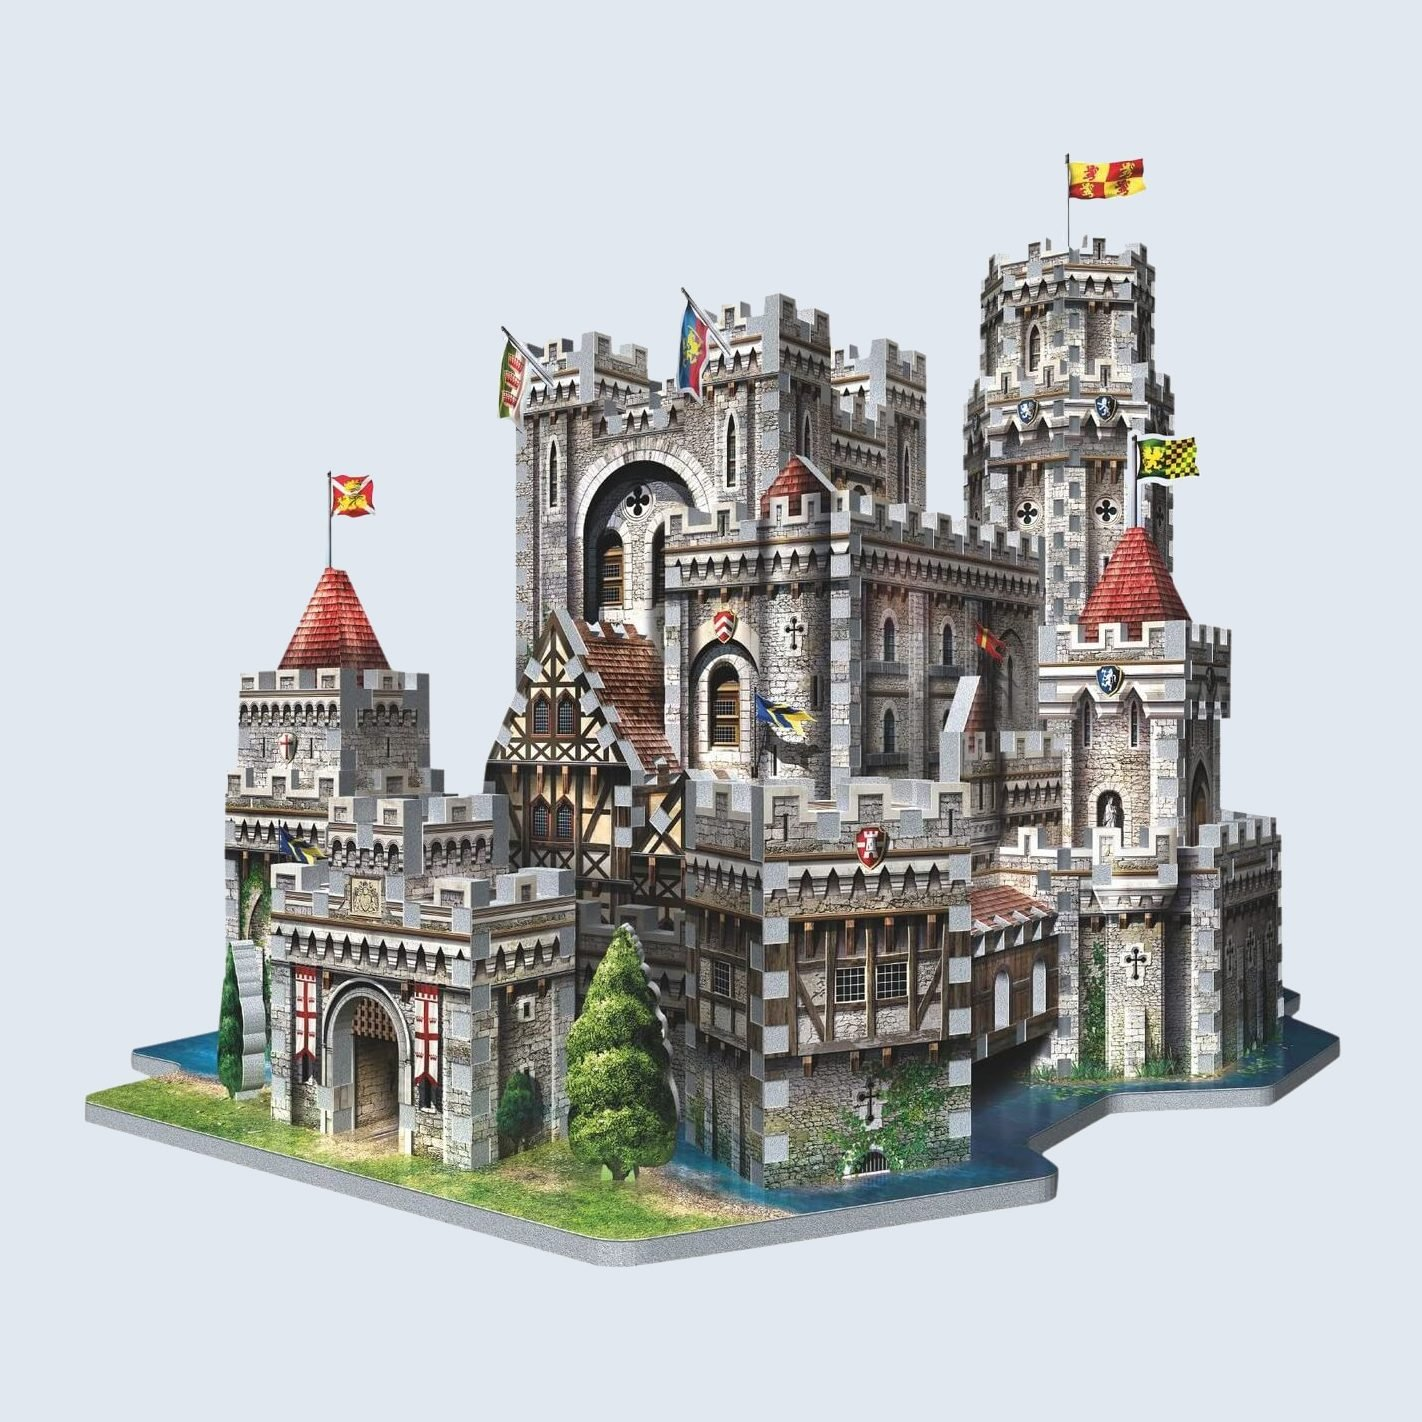 King Arthur's Camelot in 3D